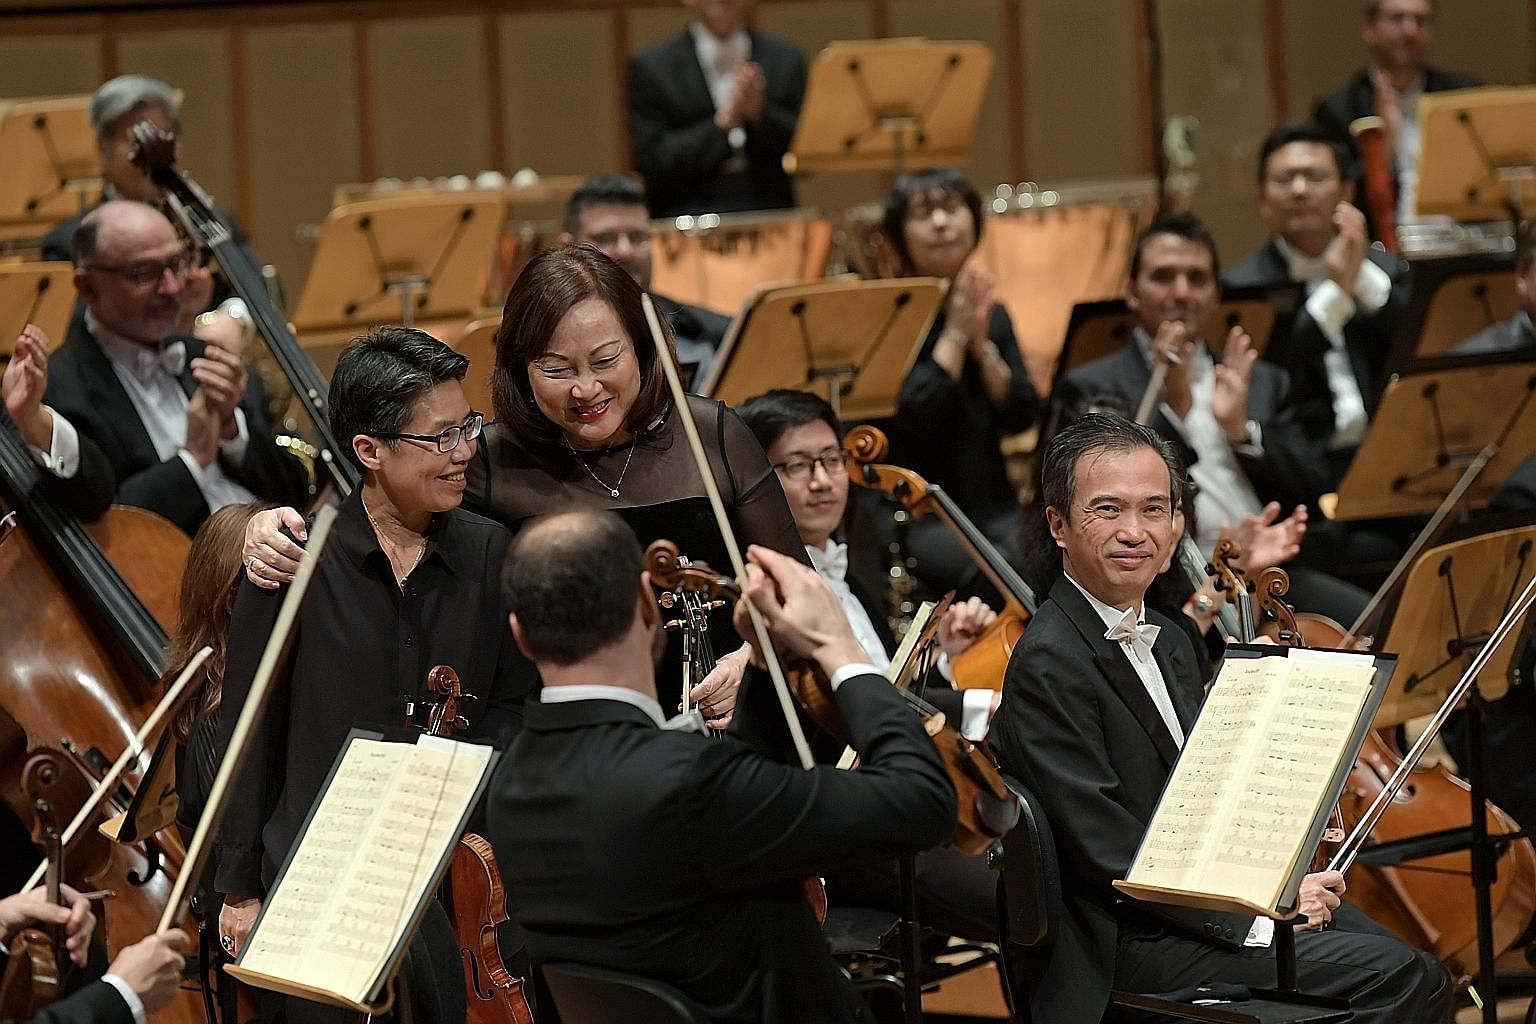 Musicians Lim Shue Chern (left) and Lynnette Seah receiving applause at the SSO 40th-anniversary concert.